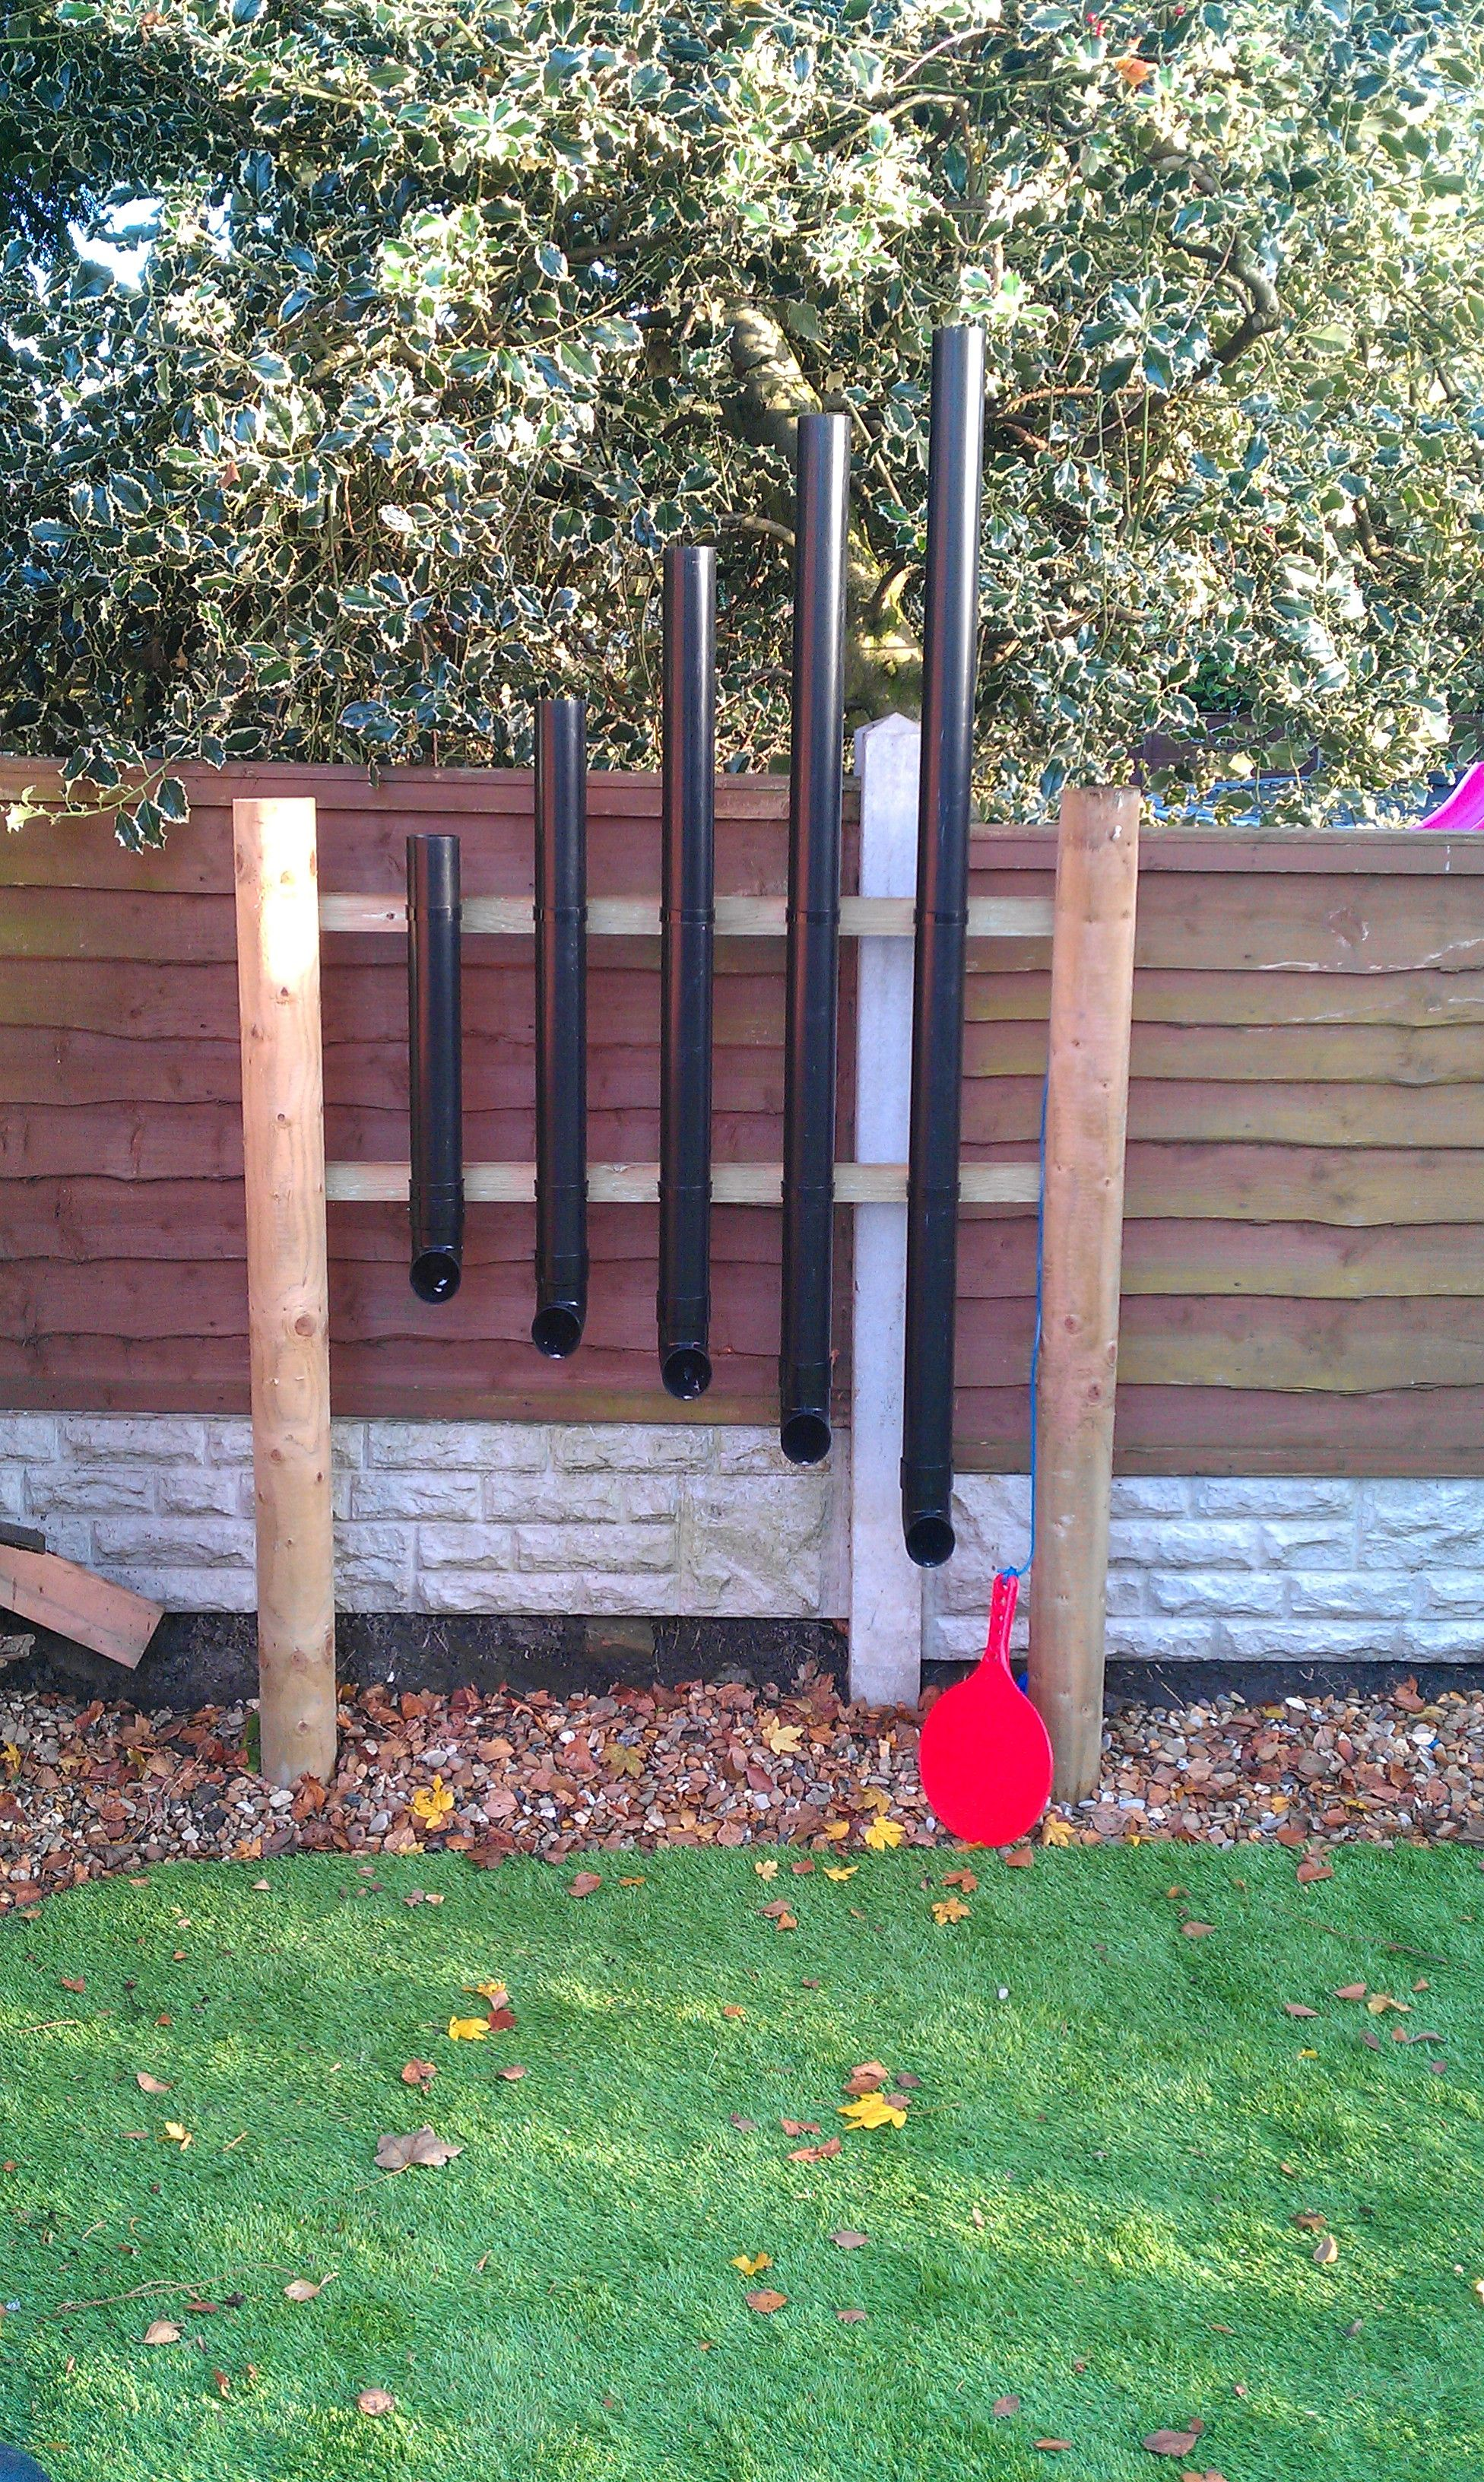 Drain Pipes Used As Musical Instruments A Paddle Bat Is Attached To The Poles At Side Which My Kids Use Pat